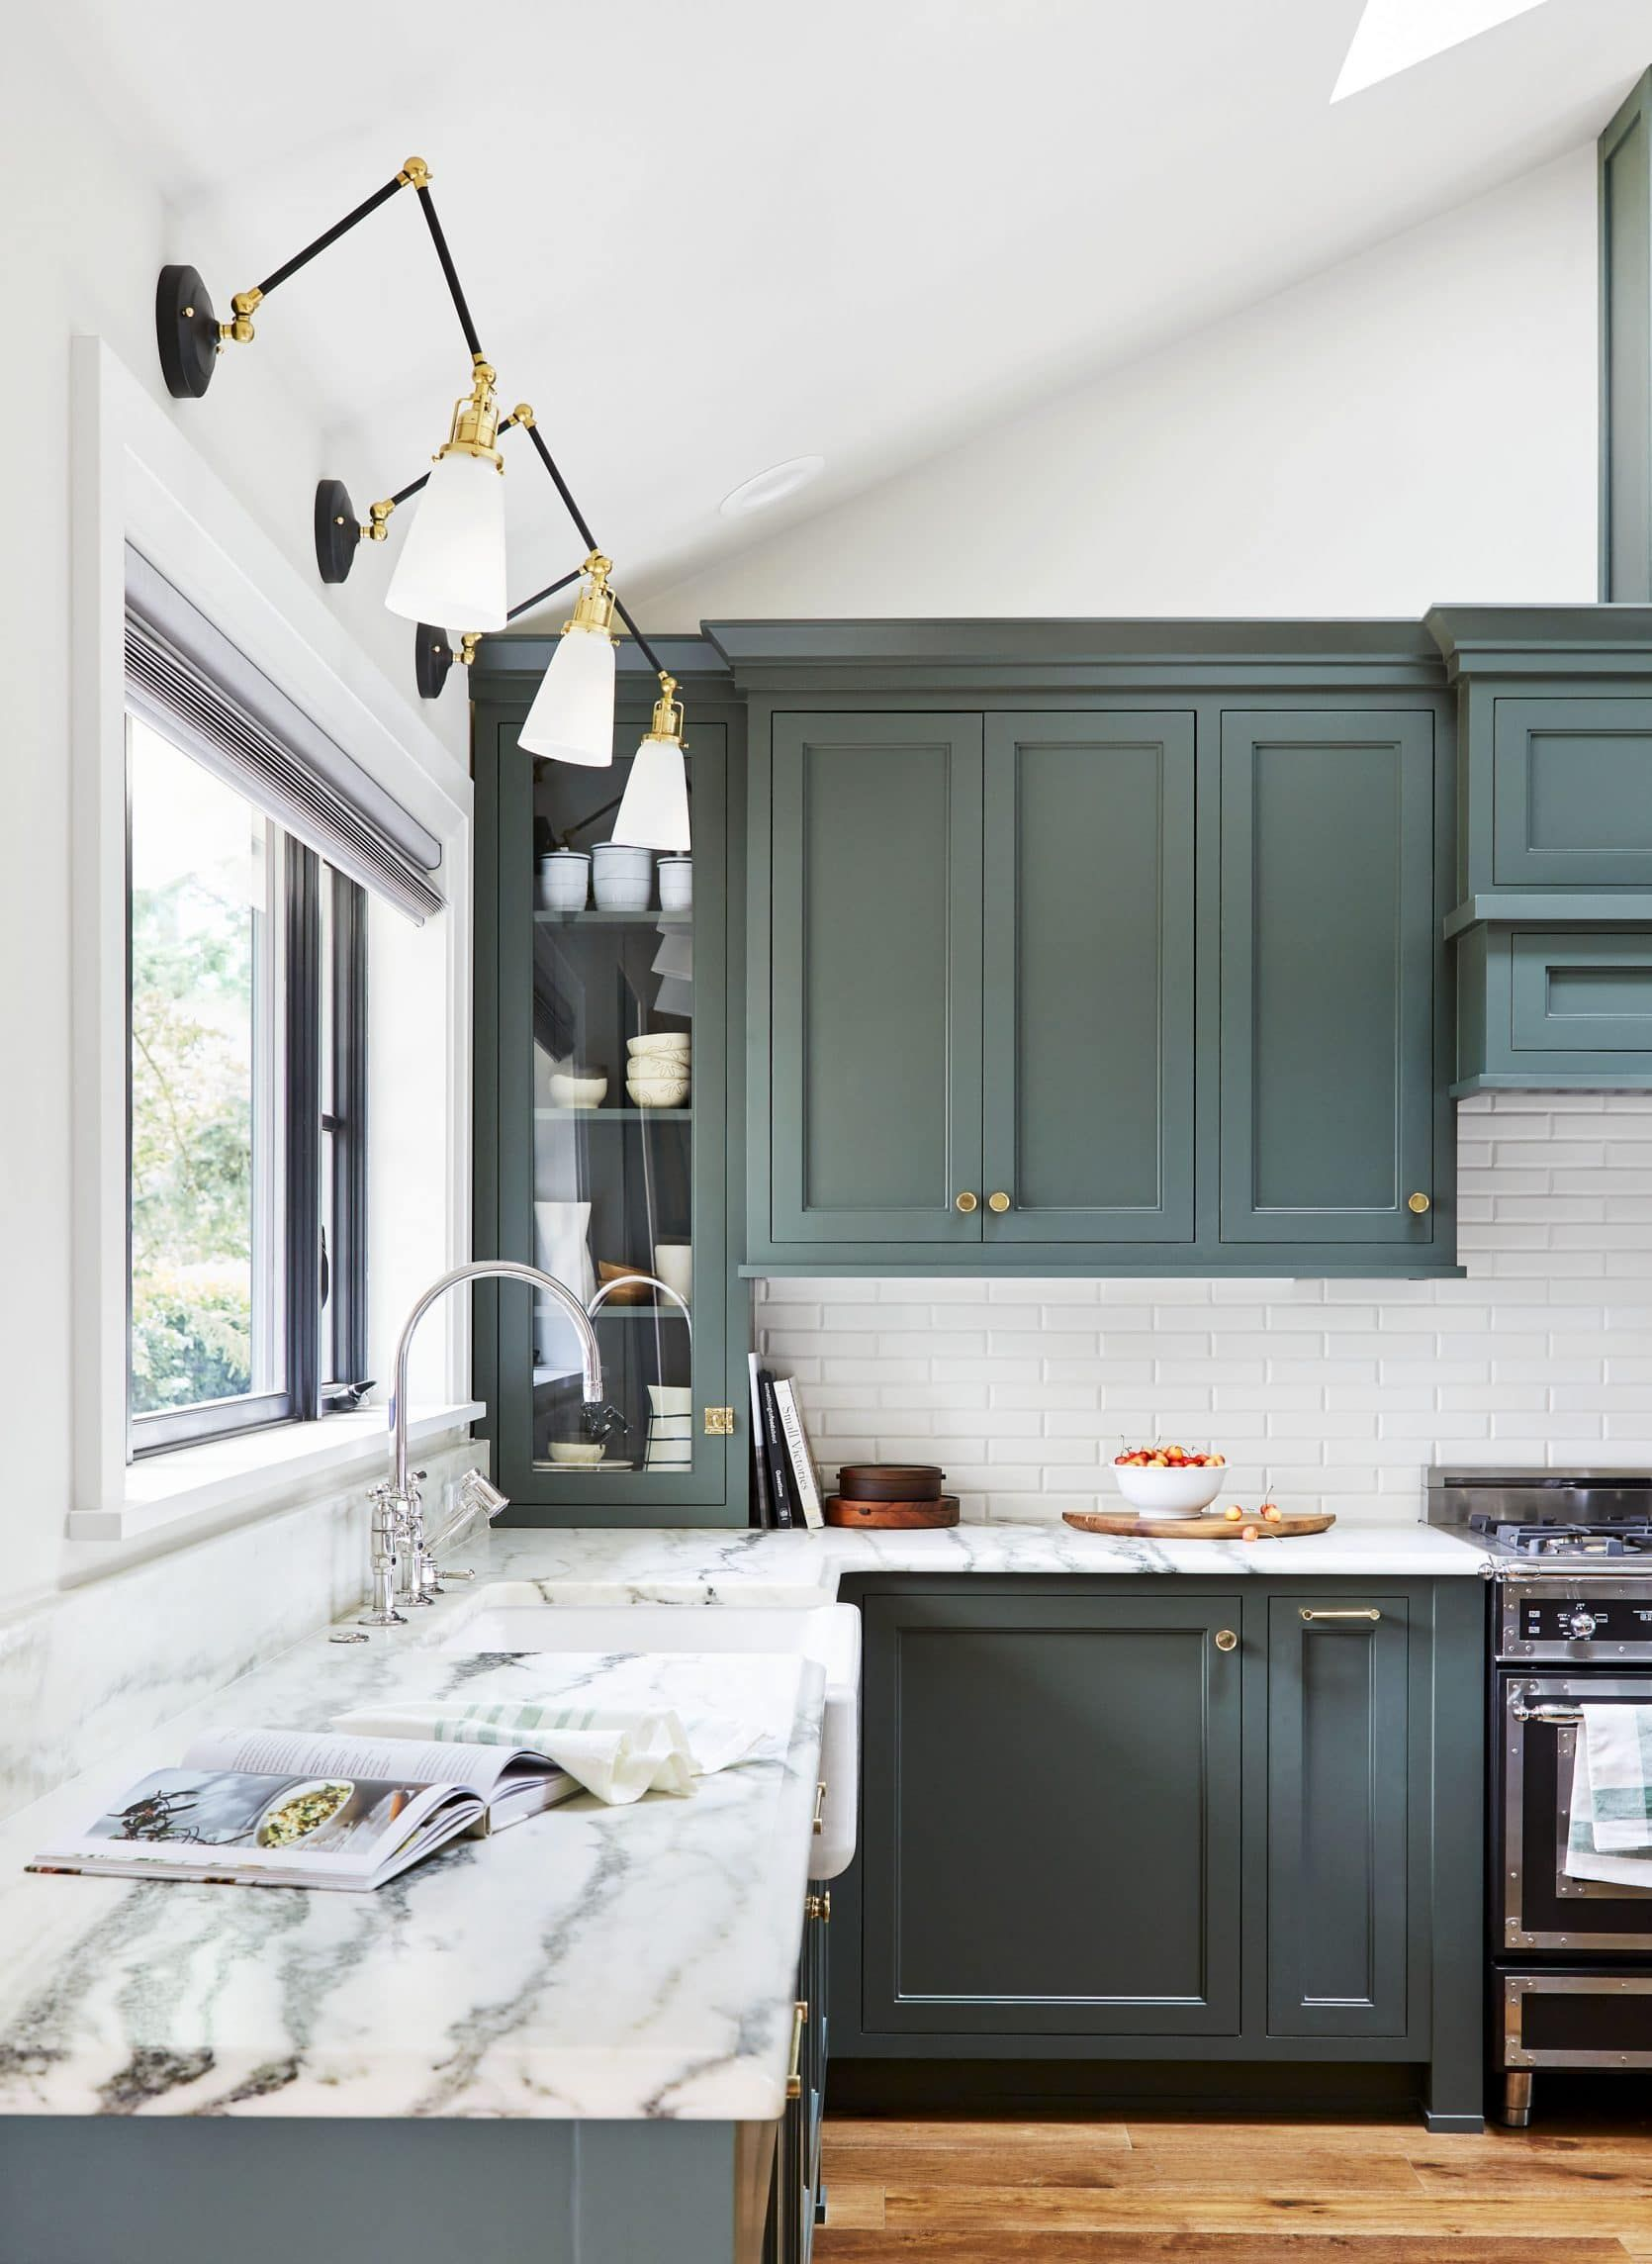 All The What S Why S How Much S Of The Portland Kitchen Big Reveal Emily Henderson Painted Kitchen Cabinets Colors Green Kitchen Cabinets Interior Design Kitchen